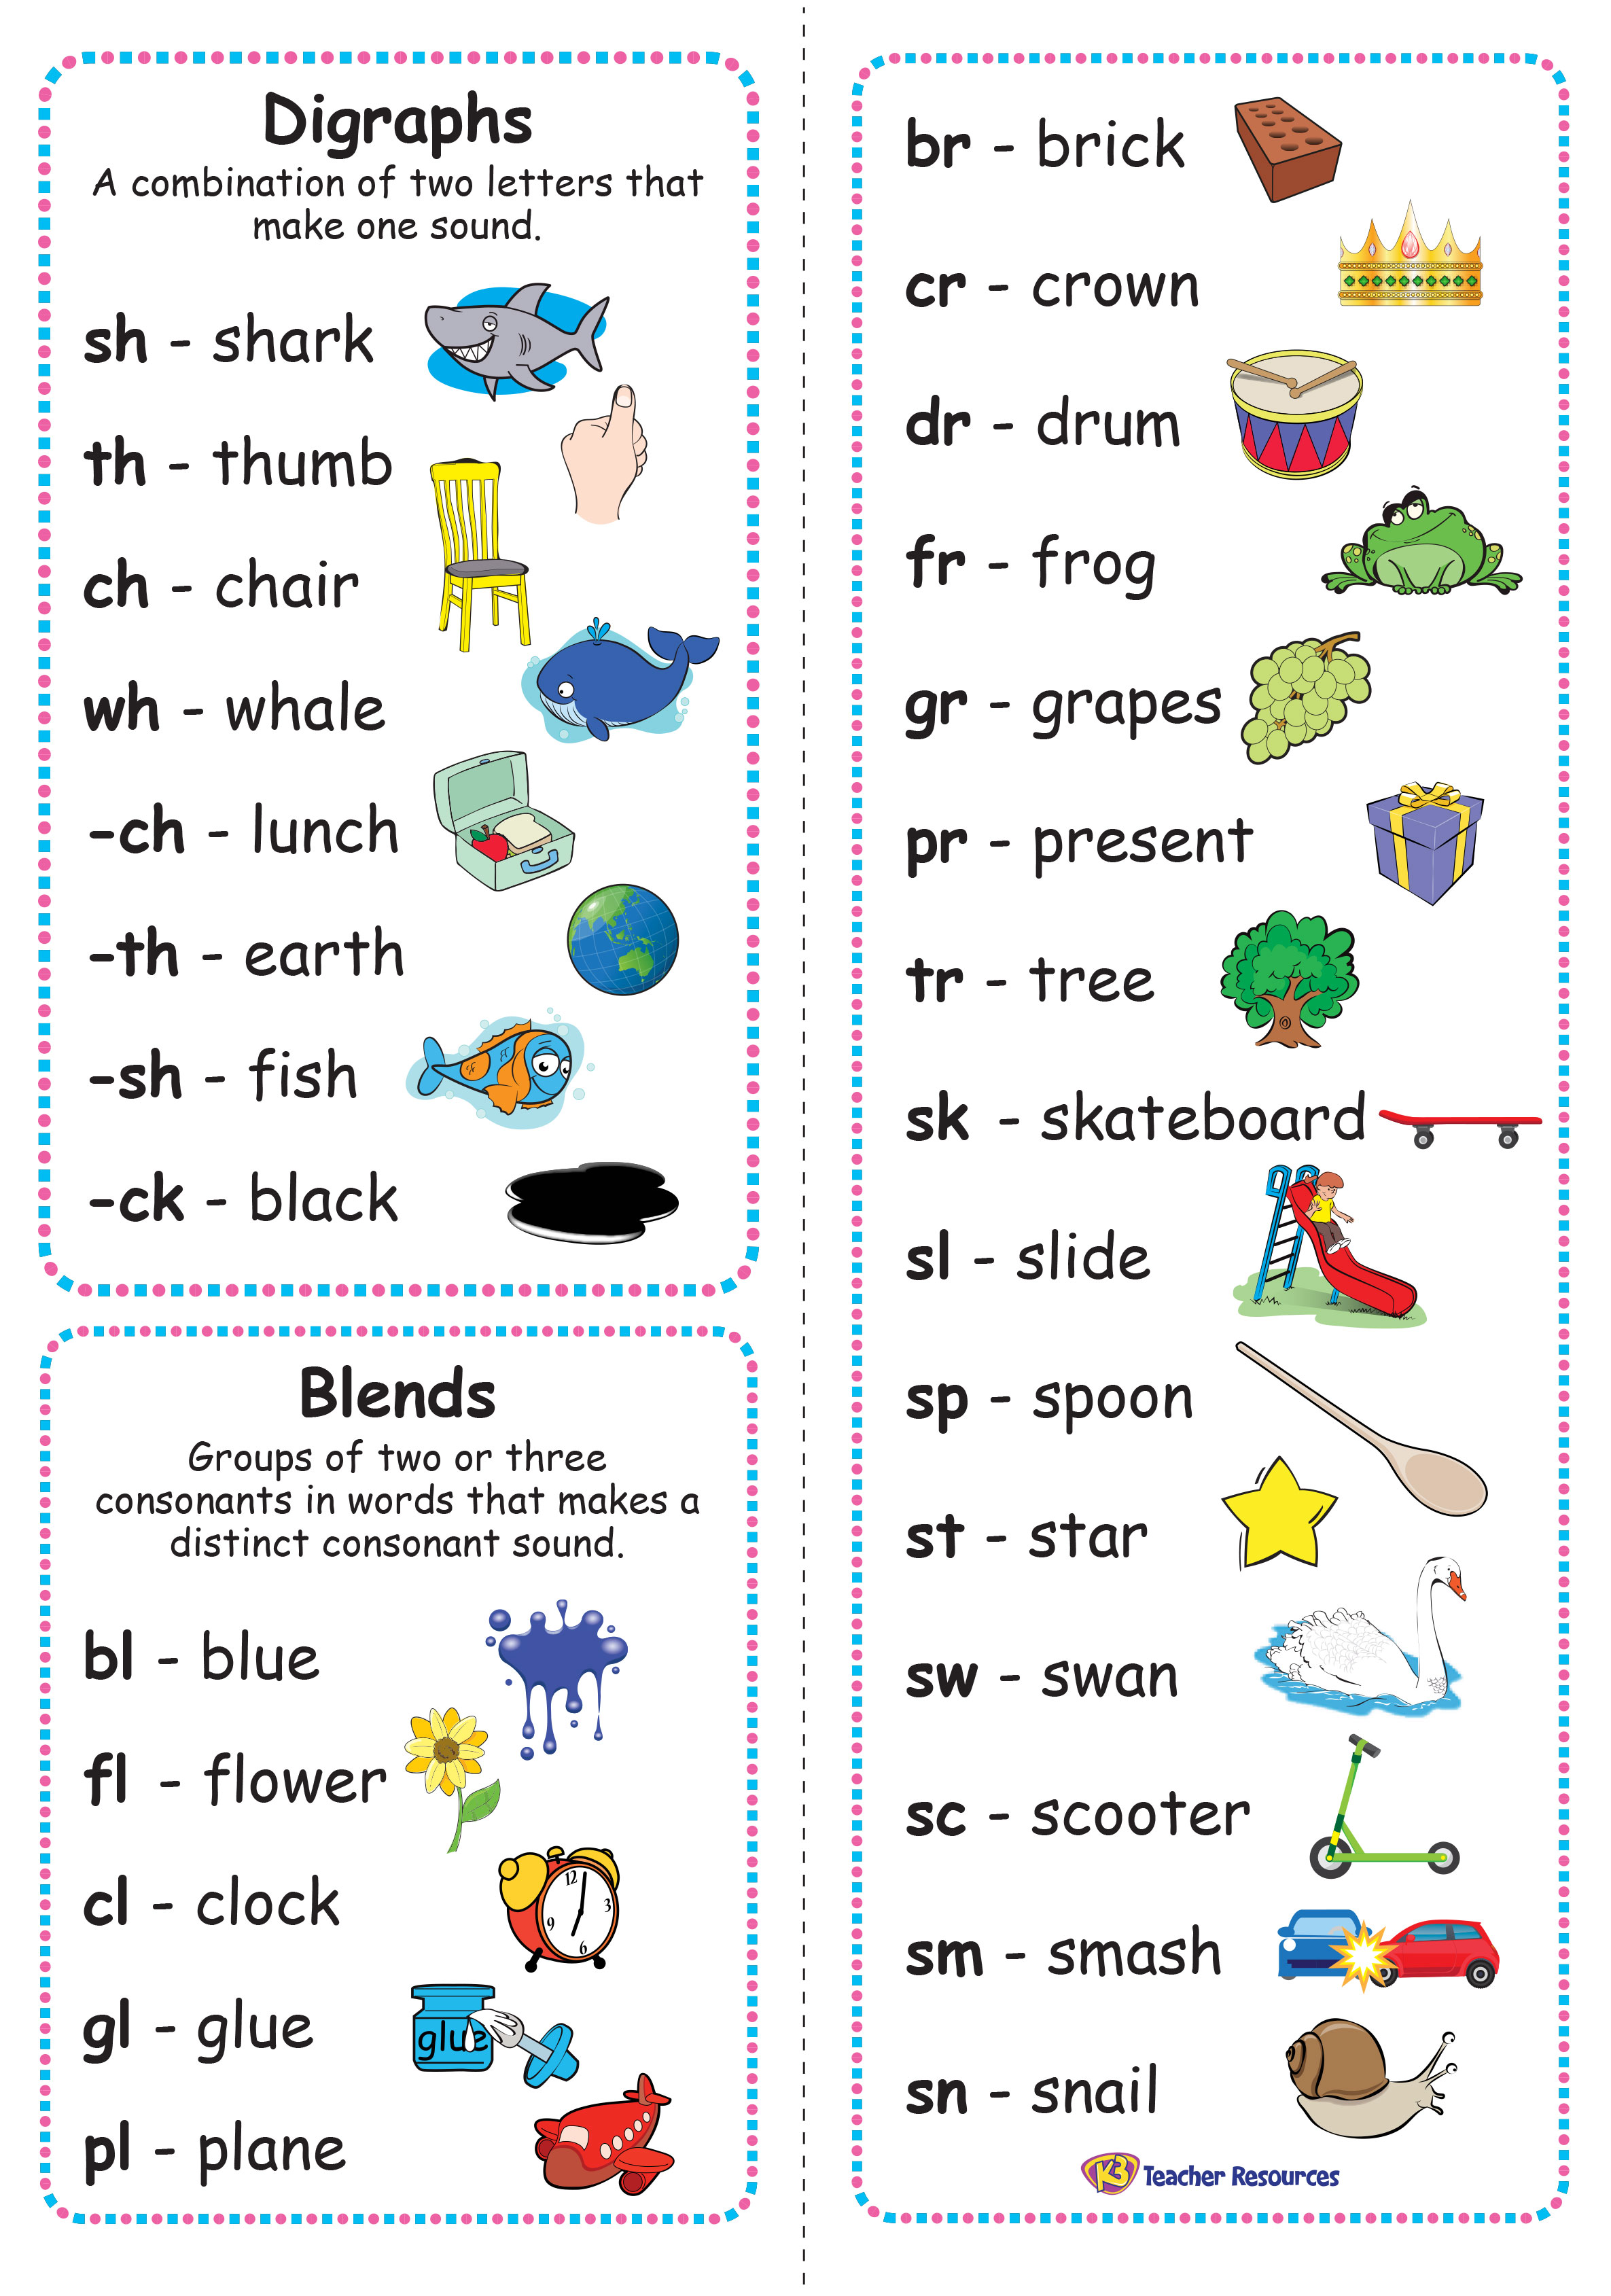 Common Digraphs And Blends Bookmark